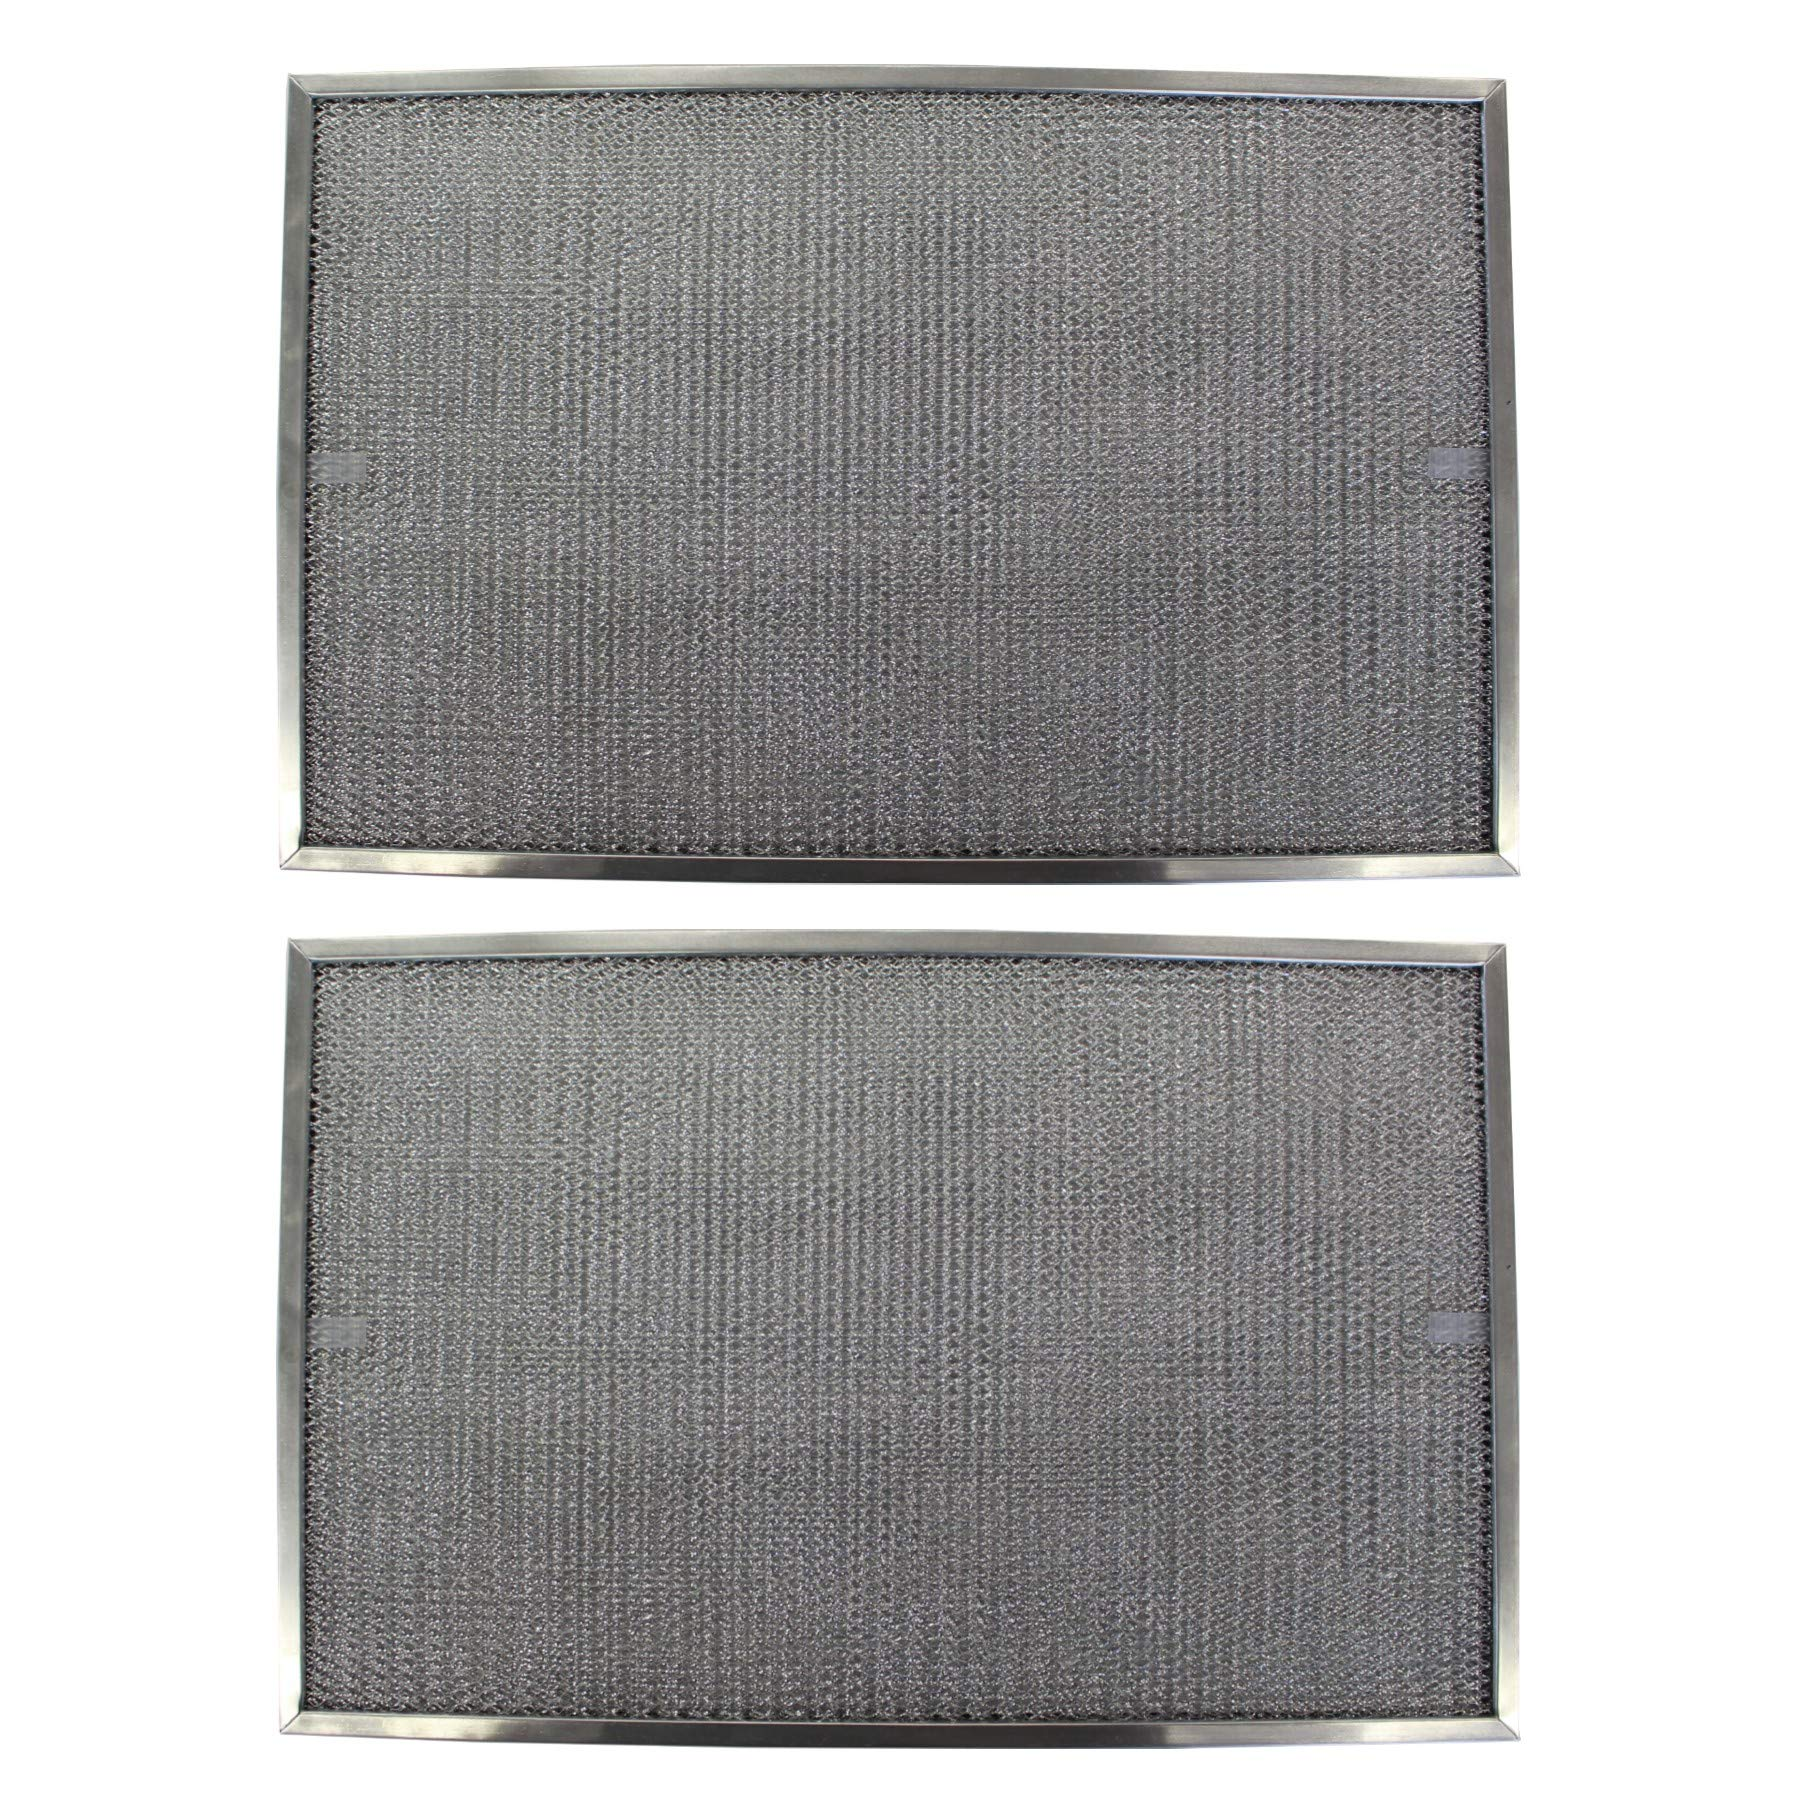 Replacement Aluminum Filters Compatible with Rangeaire 610005,G 8571,RHF0822  8 1/4 x 11 x 3/8 (PT S